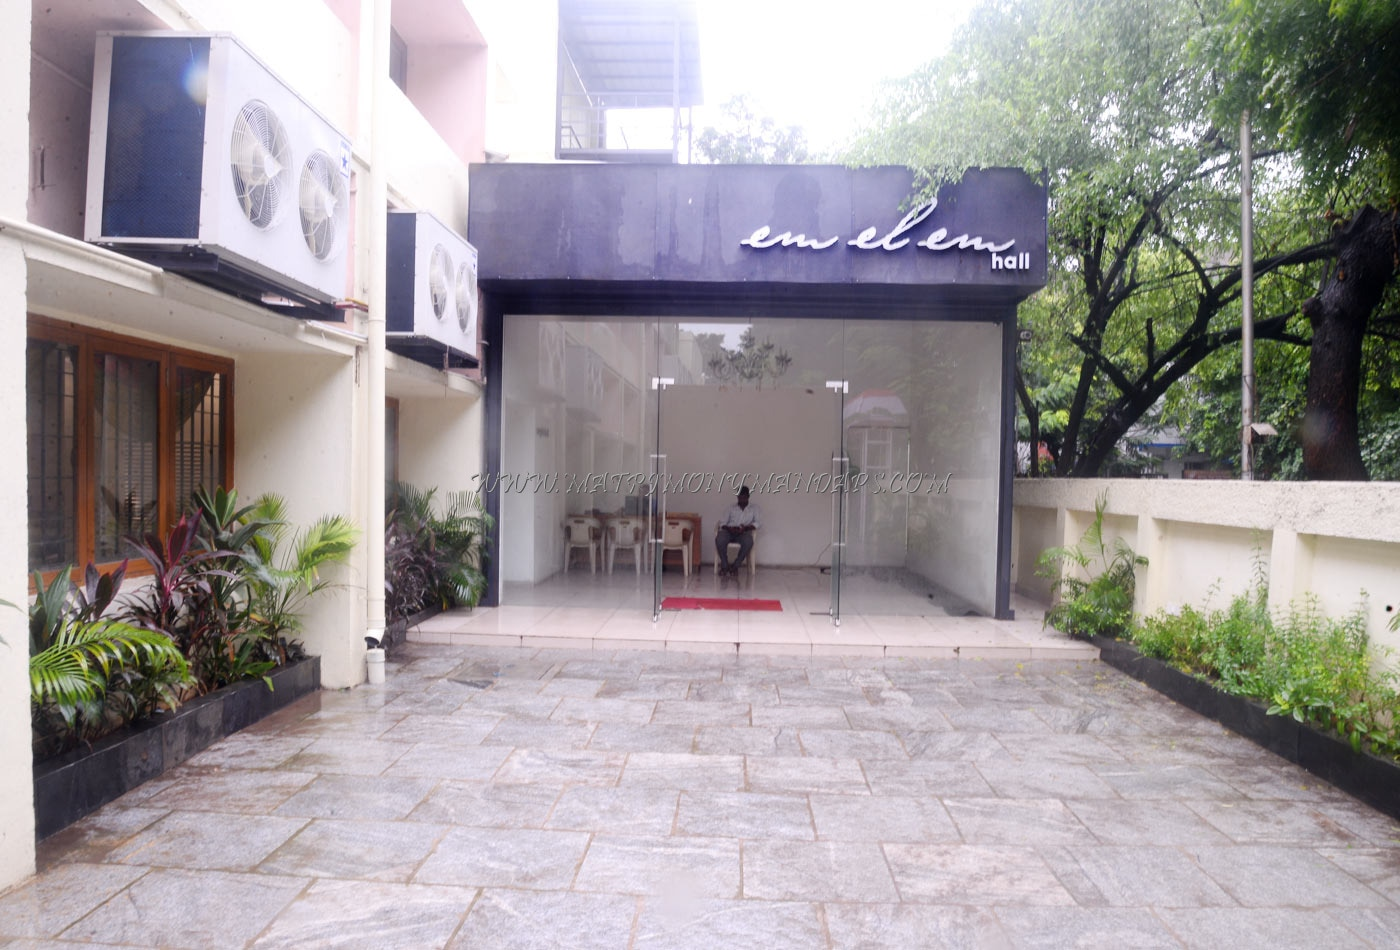 Find the availability of the EM EL EM Hall (A/C) in Mahalingapuram, Chennai and avail special offers